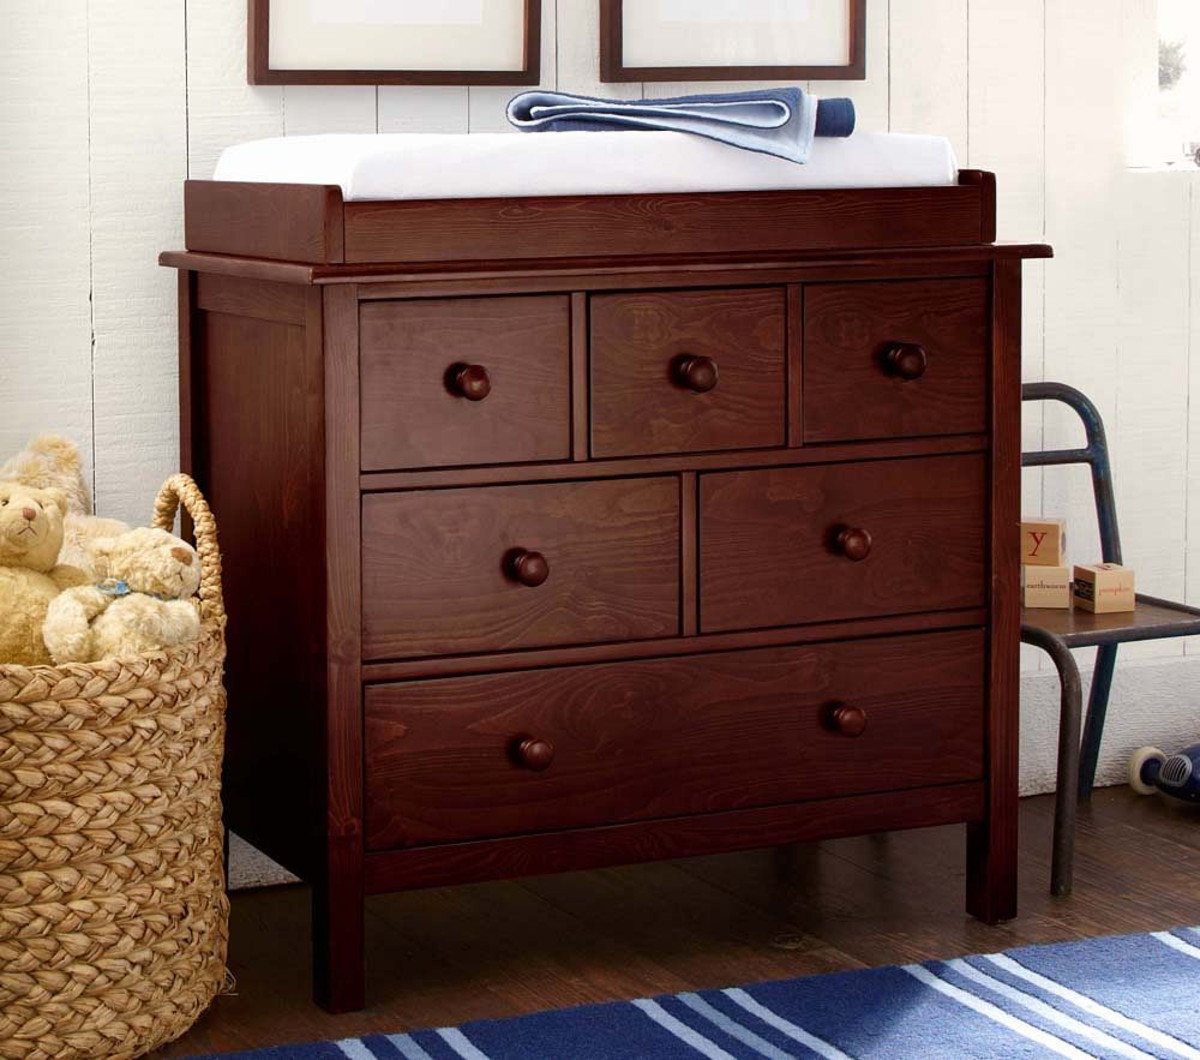 Oeuf Changing Station | Changing Table Dresser | Dresser as Changing Table